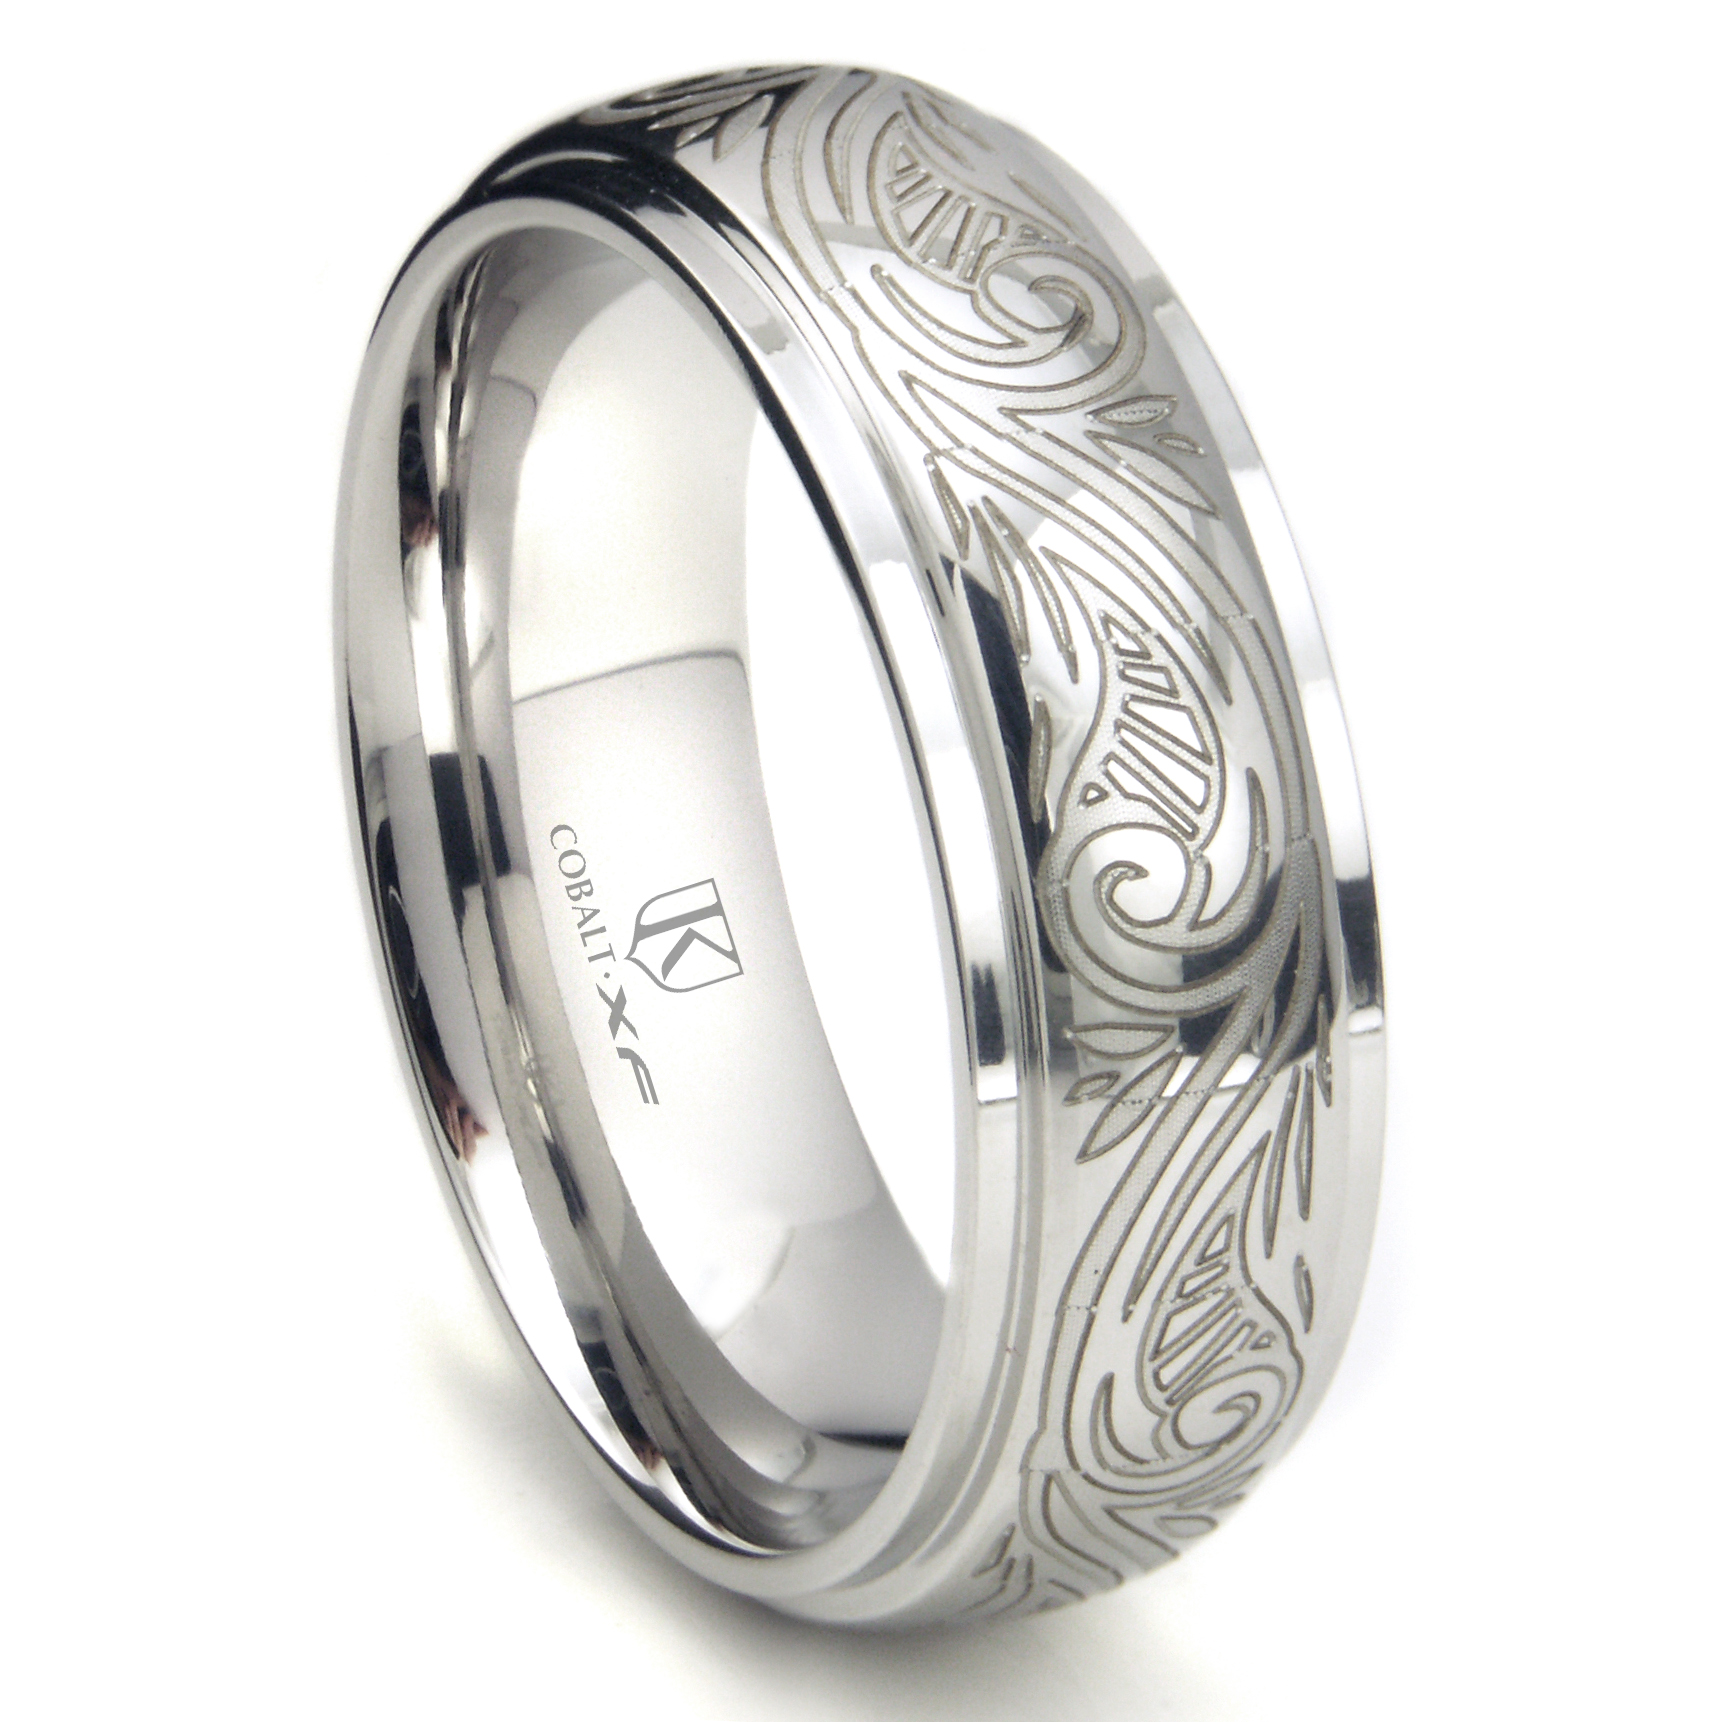 by ring men sizes bcff com walmart s high sac spinner band size polished silver rings sterling ip